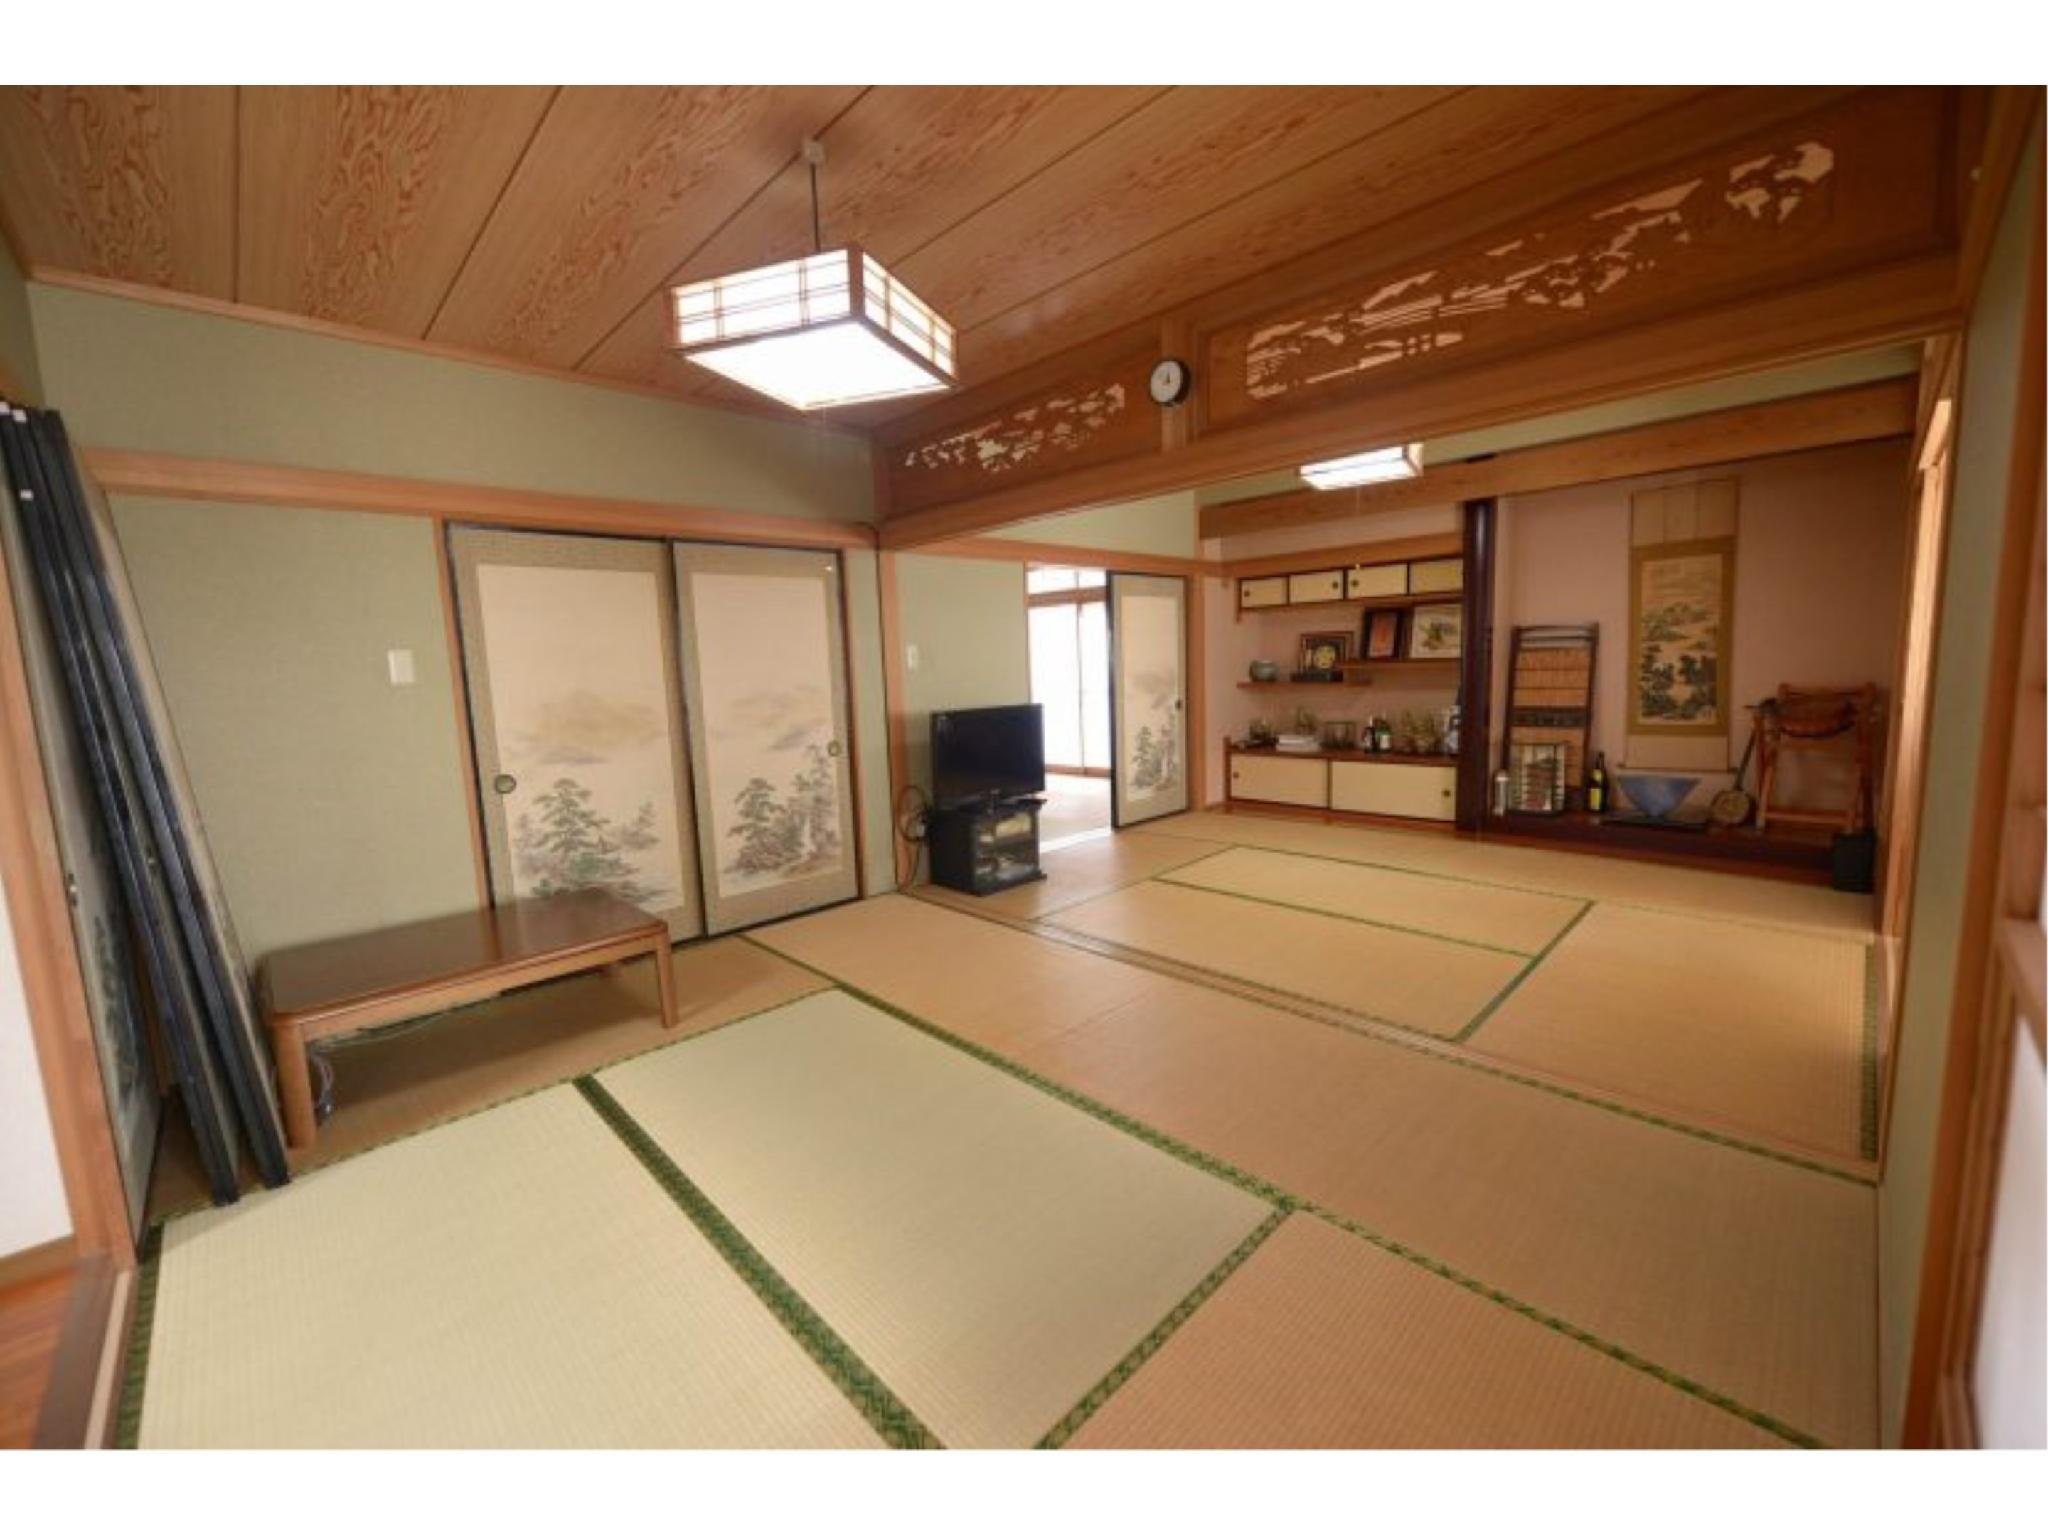 다다미 객실(101호) (Japanese-style Room (No. 101))